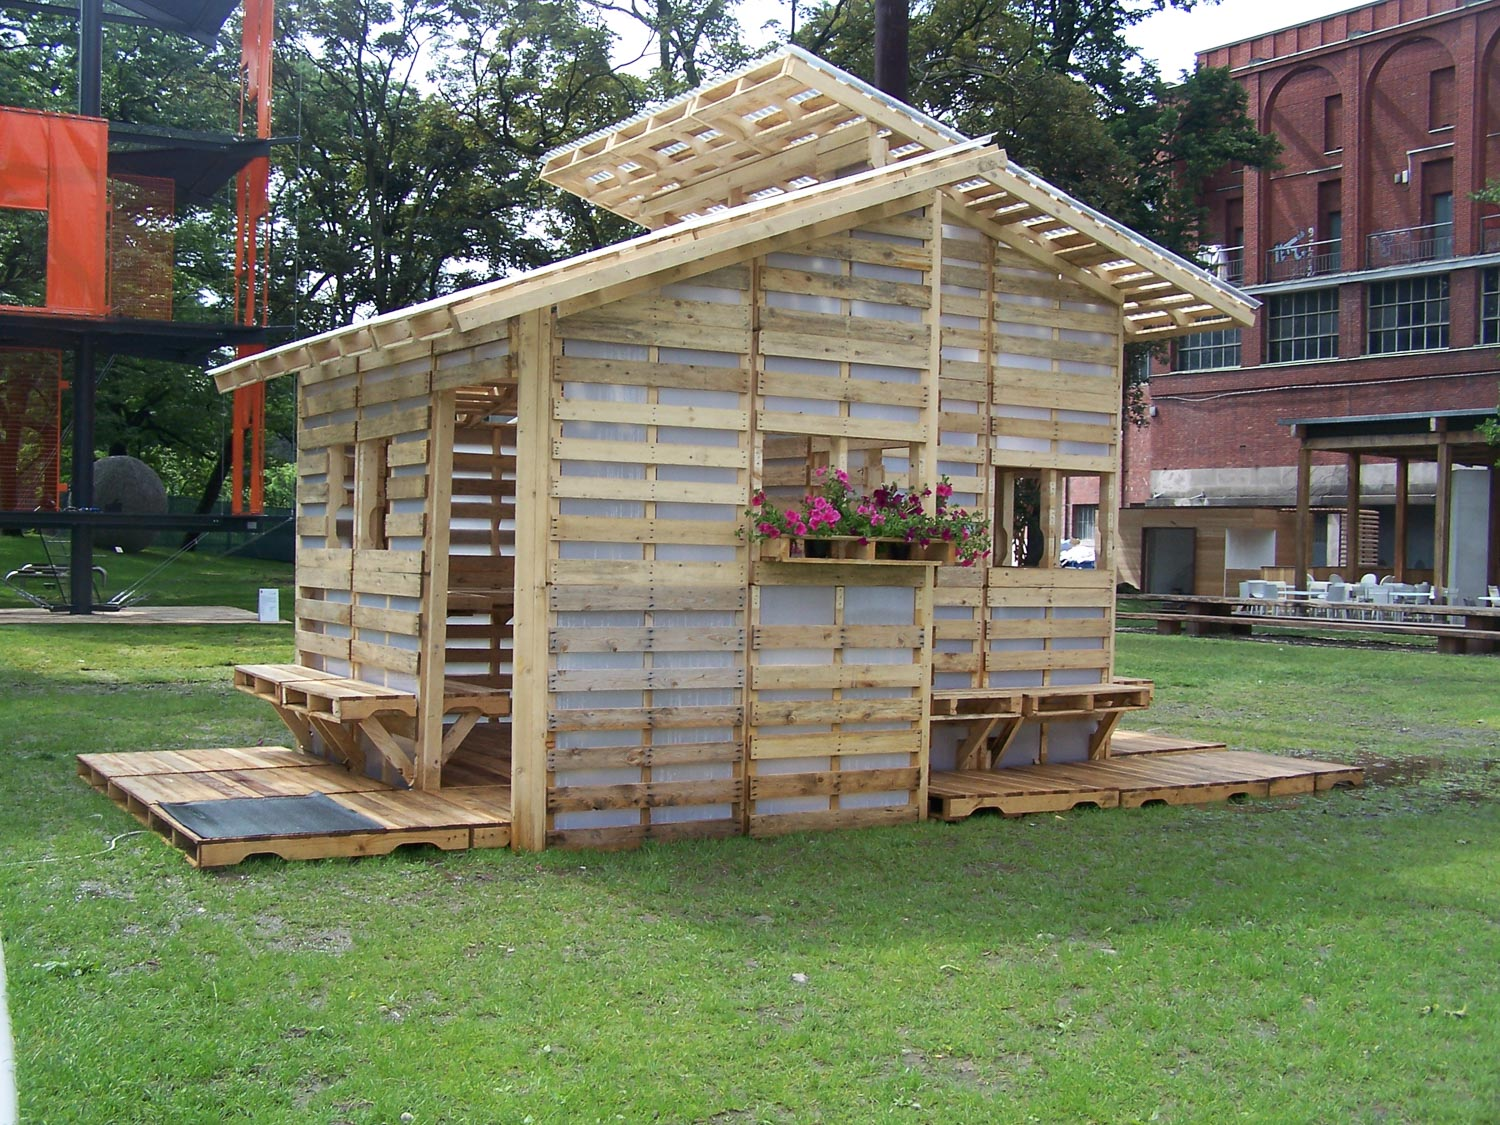 THE PALLET HOUSE — I-BEAM on small house floor plans, pallet tree house plans, pallet house building plans, wood pallet house plans, pallet house floor plans, post and beam carriage house plans, pallet dog house plans, tiny shed house plans, pallet chicken house plans, pallet house design plans,